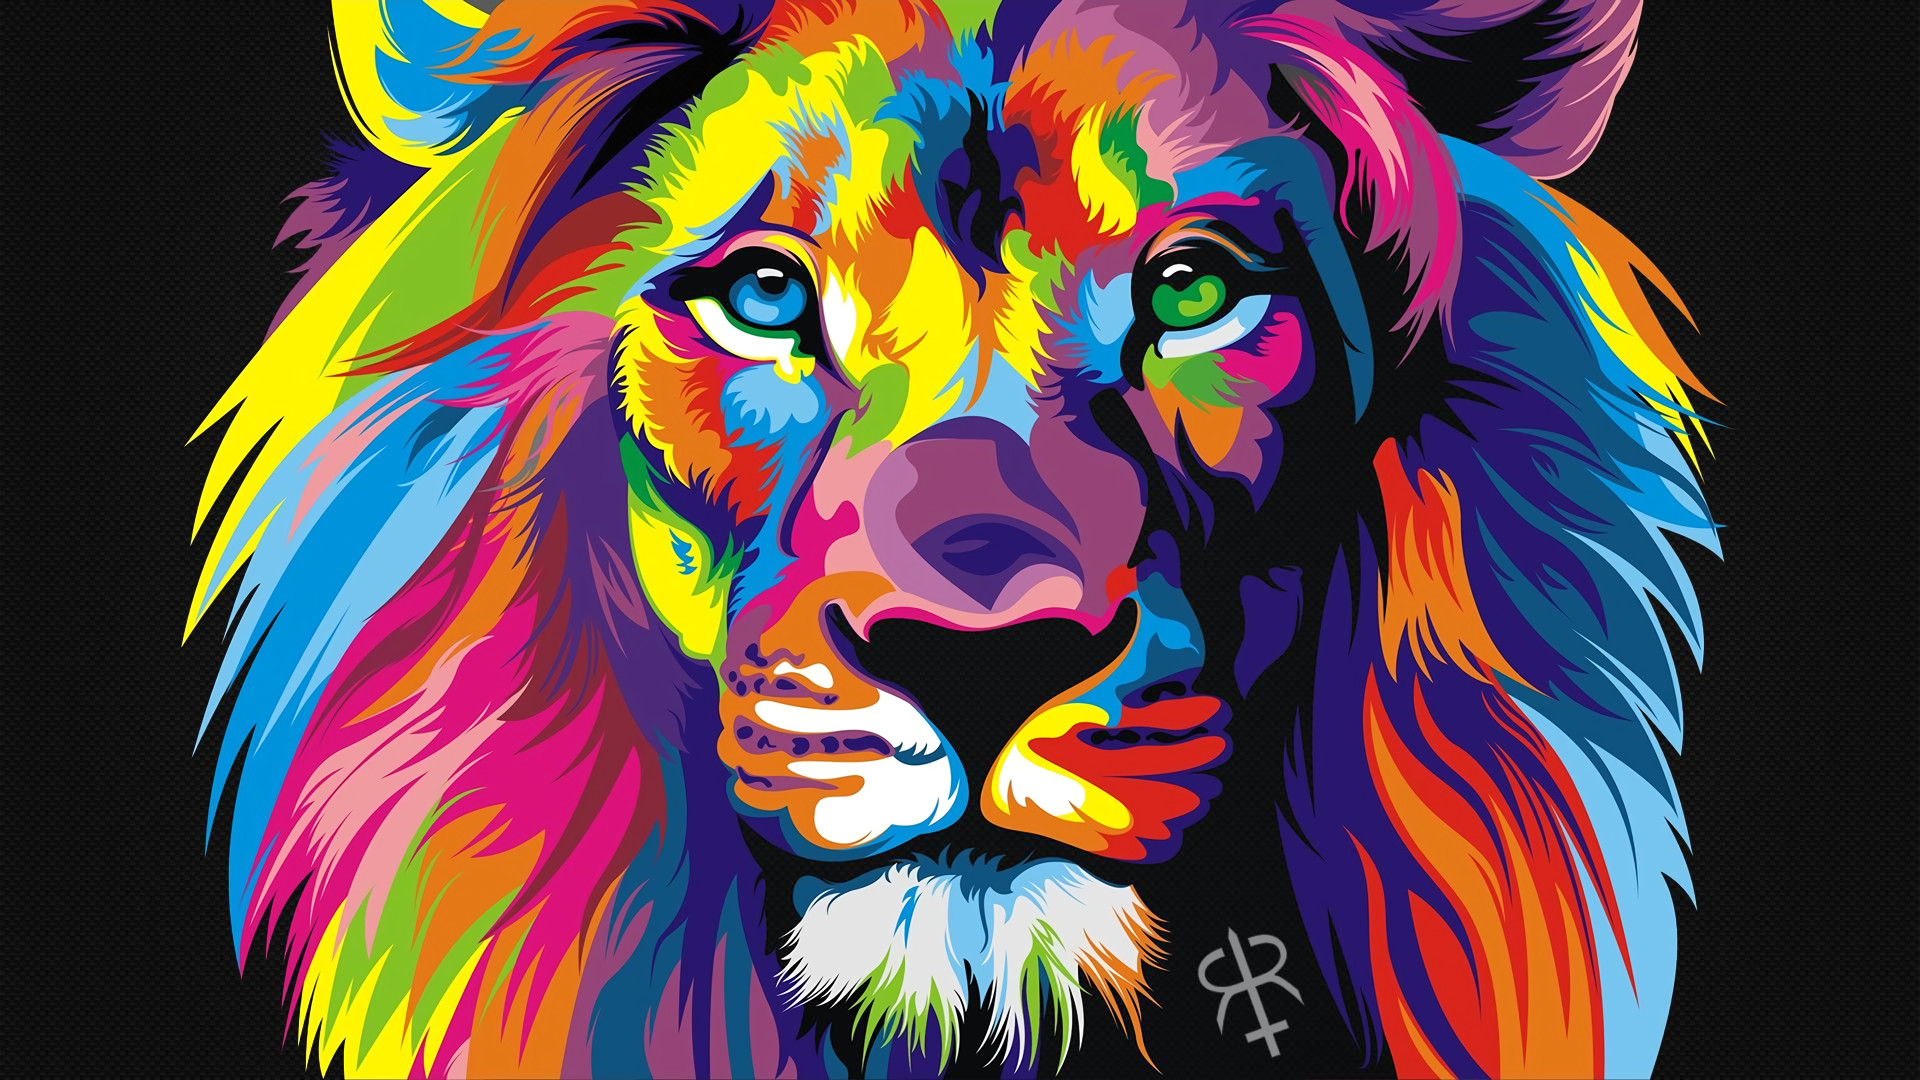 Facepaint bodypaint inspired by Lisa Frank colorful lion .